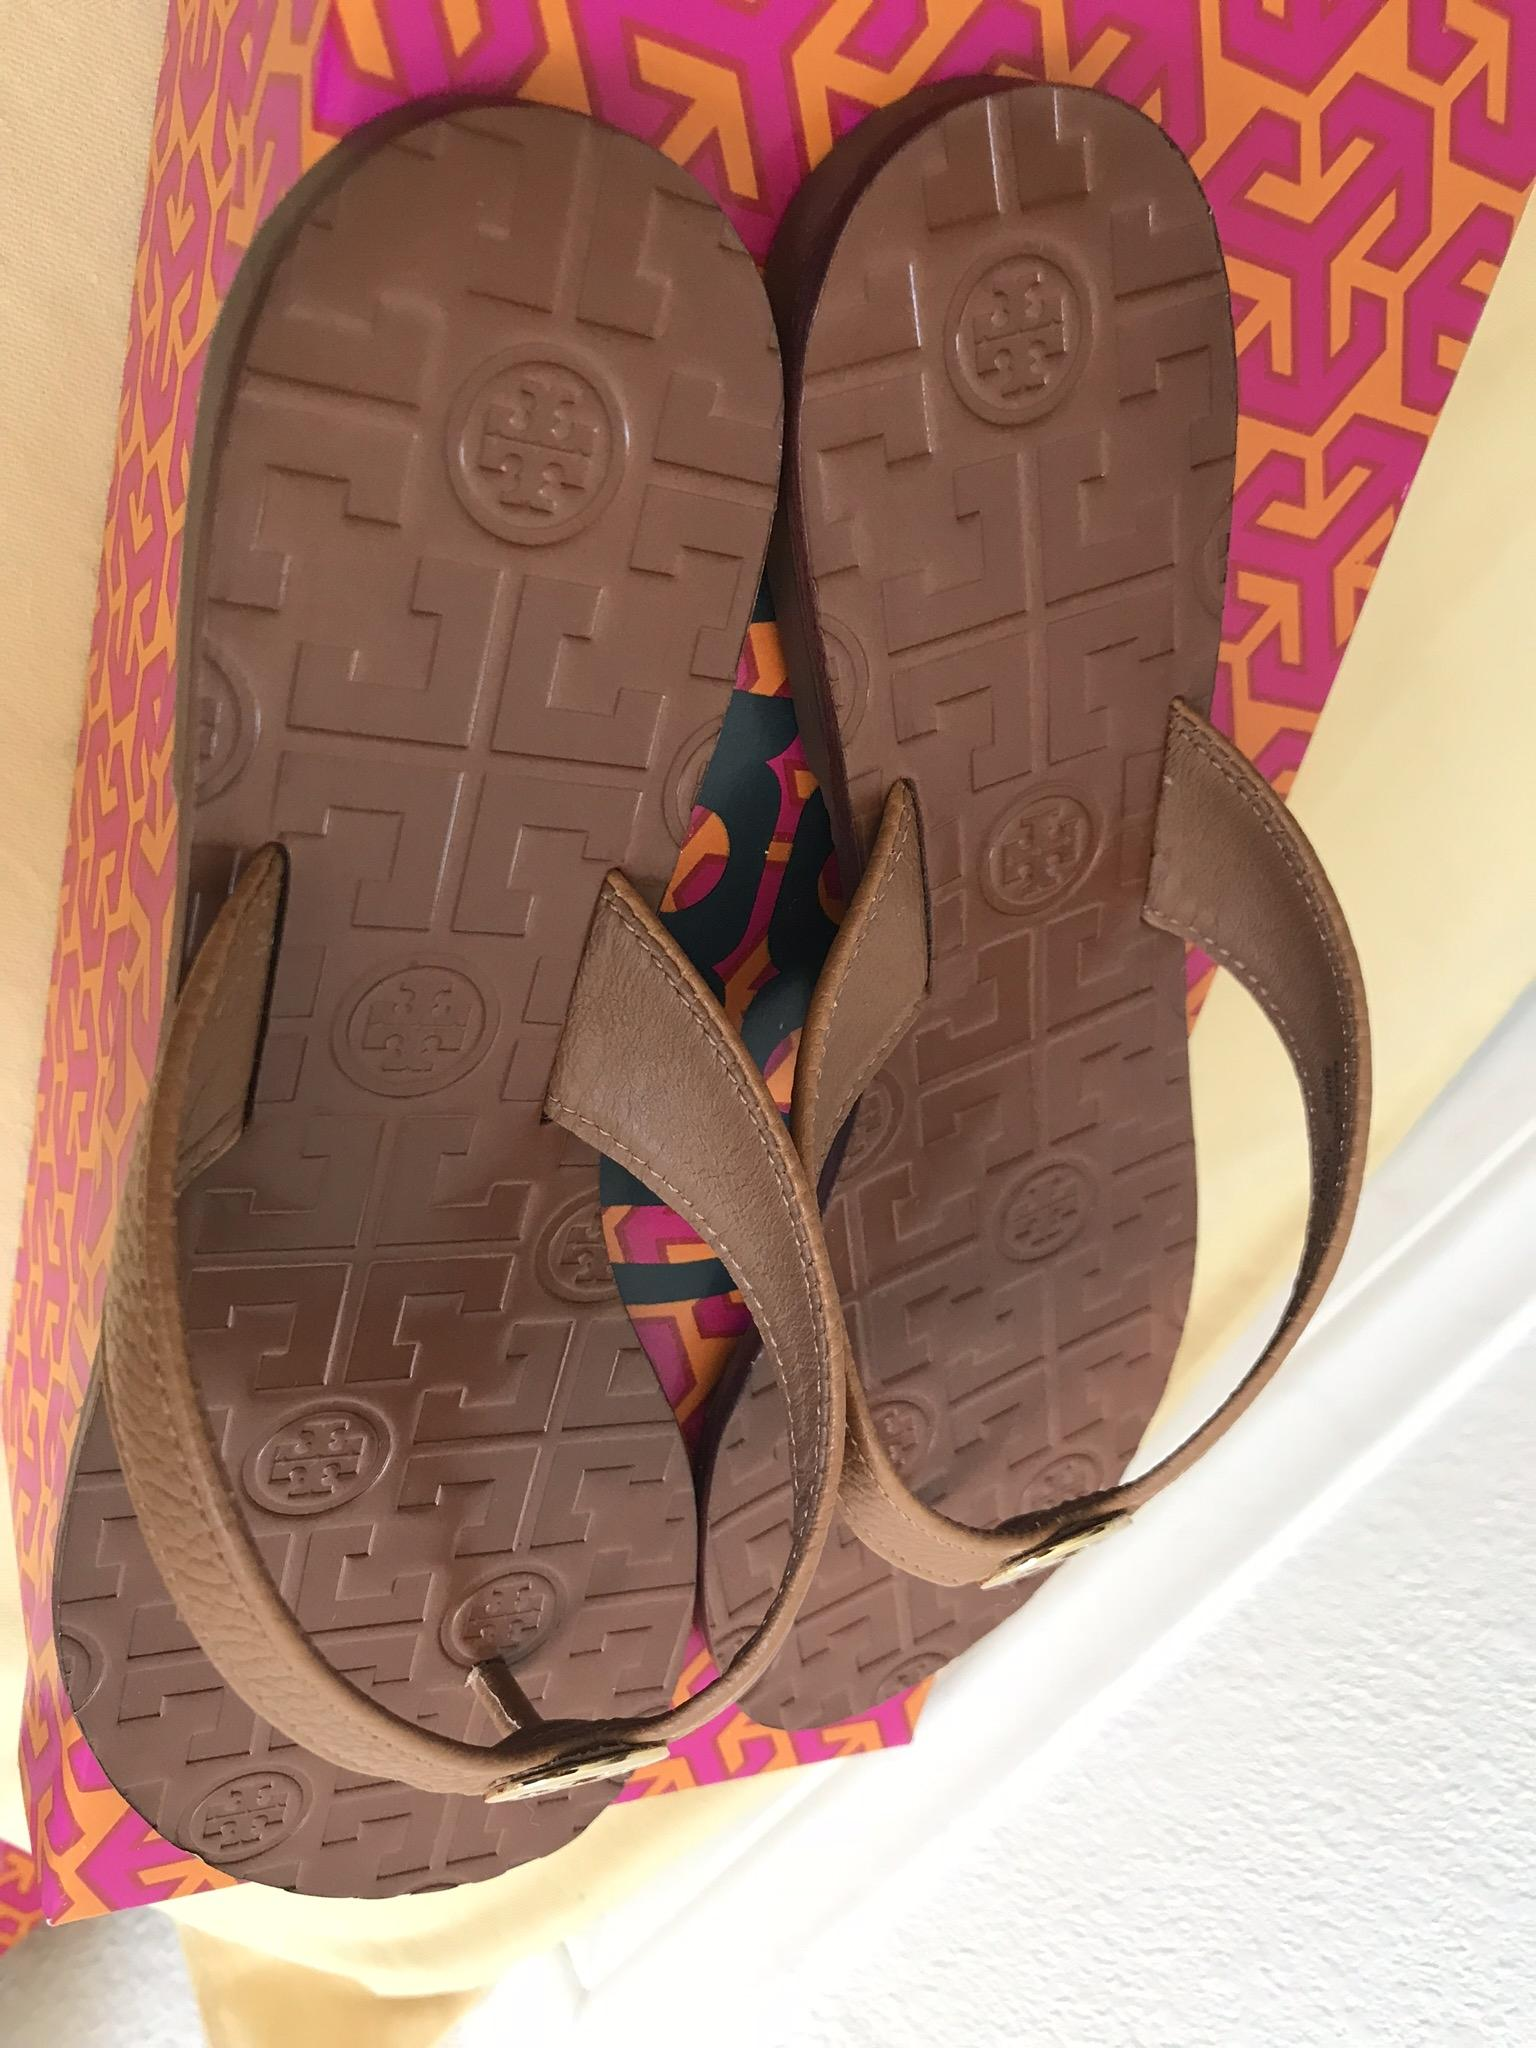 fa343fe04a96 ... Tory Burch Brown 10m Thora Thora Thora Thong Leather Royal Tan Sandals  Size US 10 Regular ...